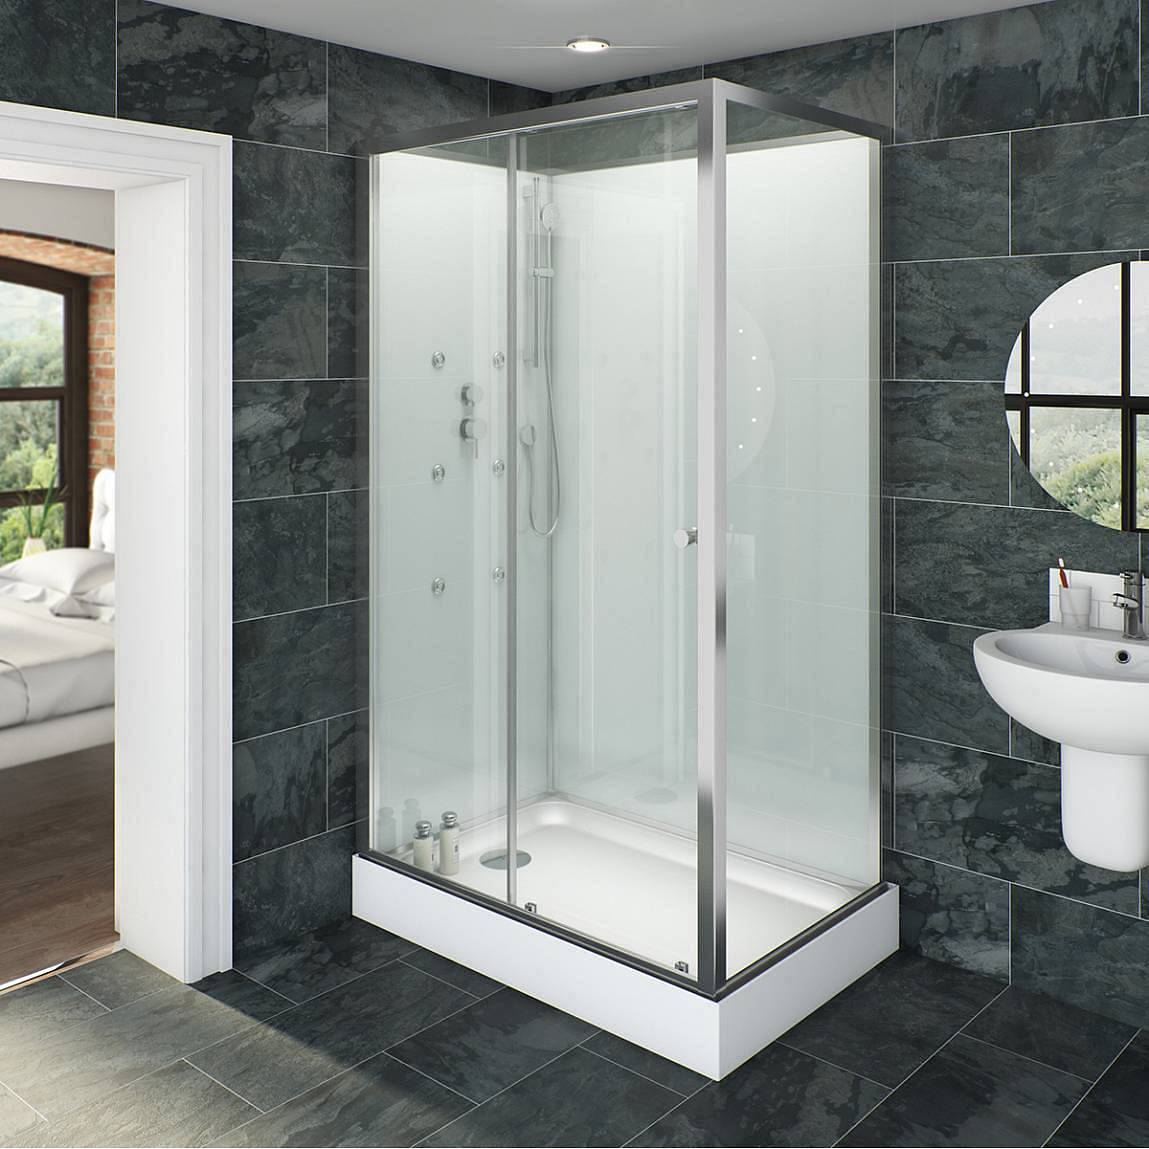 Image of V6 Rectangular Glass Backed Shower Cabin 1200 x 800